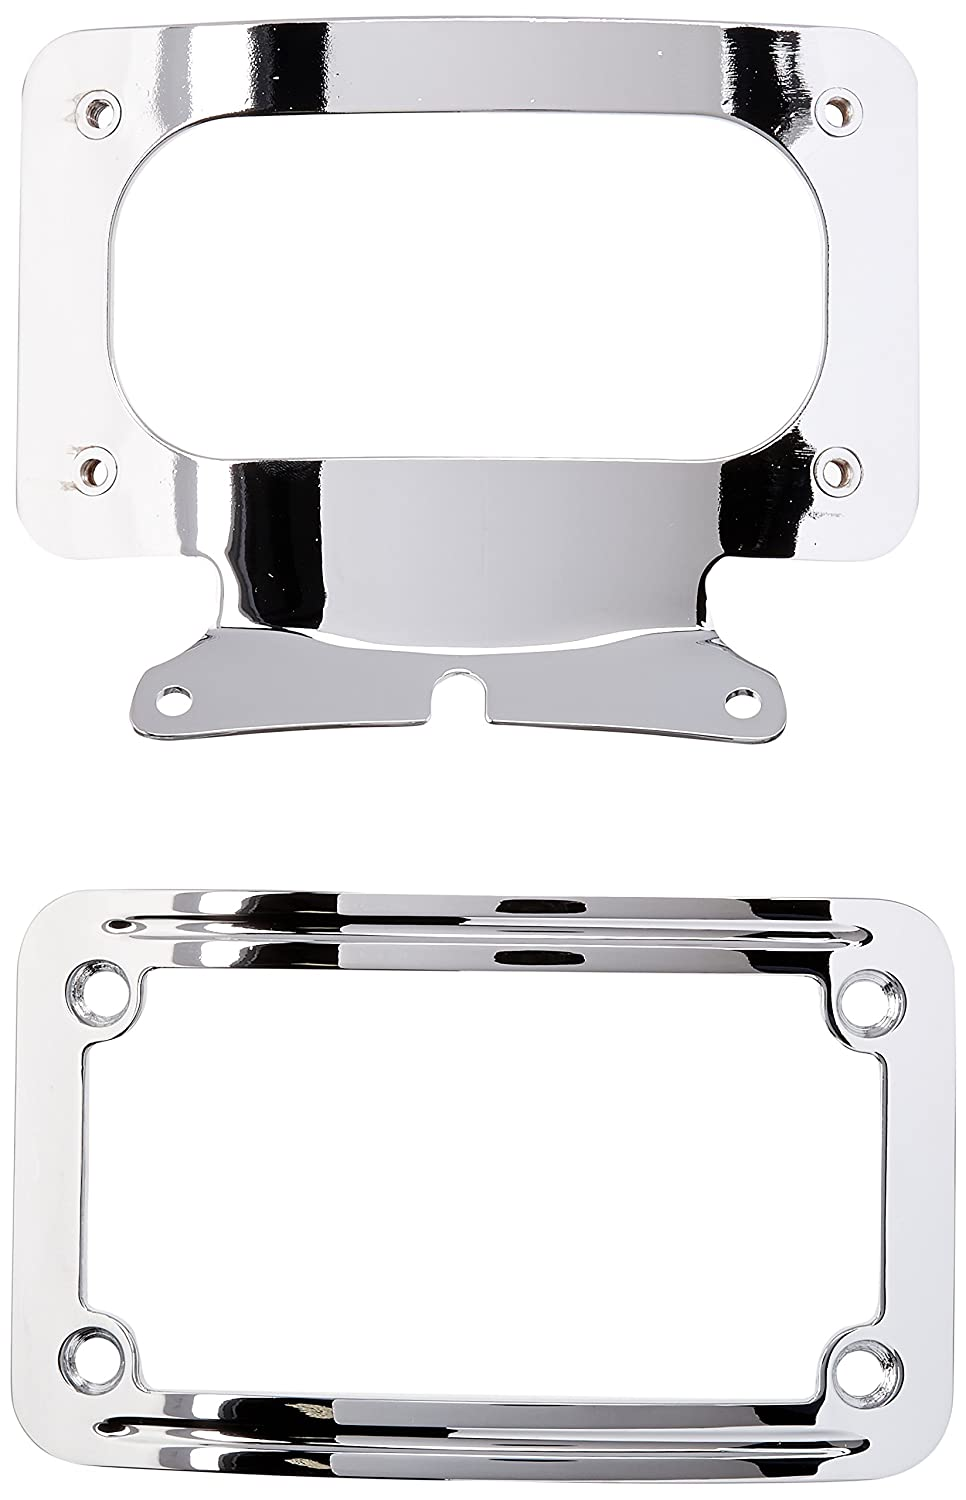 Kuryakyn 3163 Curved License Plate Mount